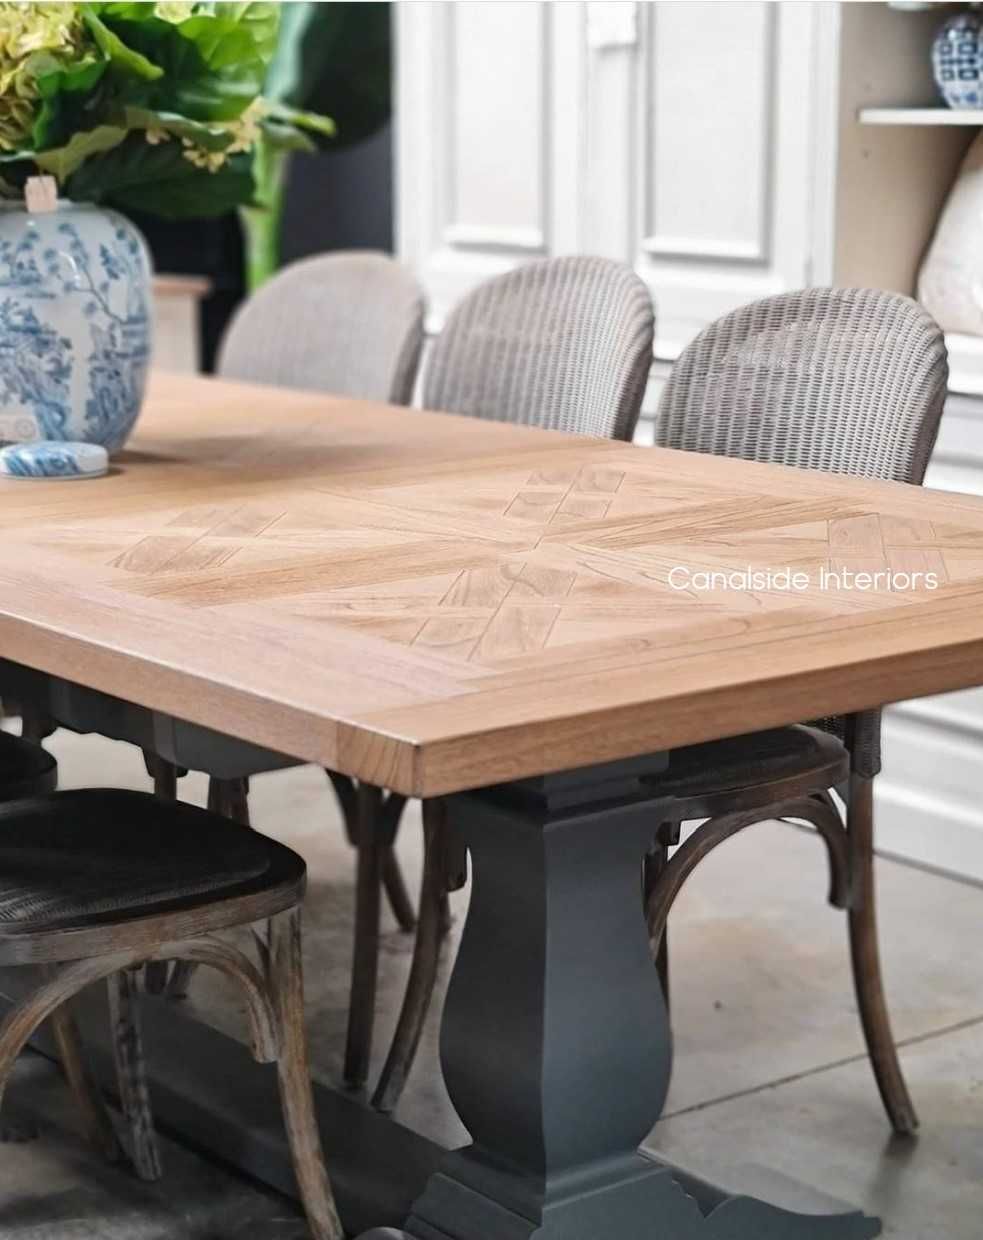 Balmoral Parquetry Double Extension Dining Table Grey Base tables, extension tables, hamptons, hamptons table, provincial, plantation, dining tables, trestle base, dining room